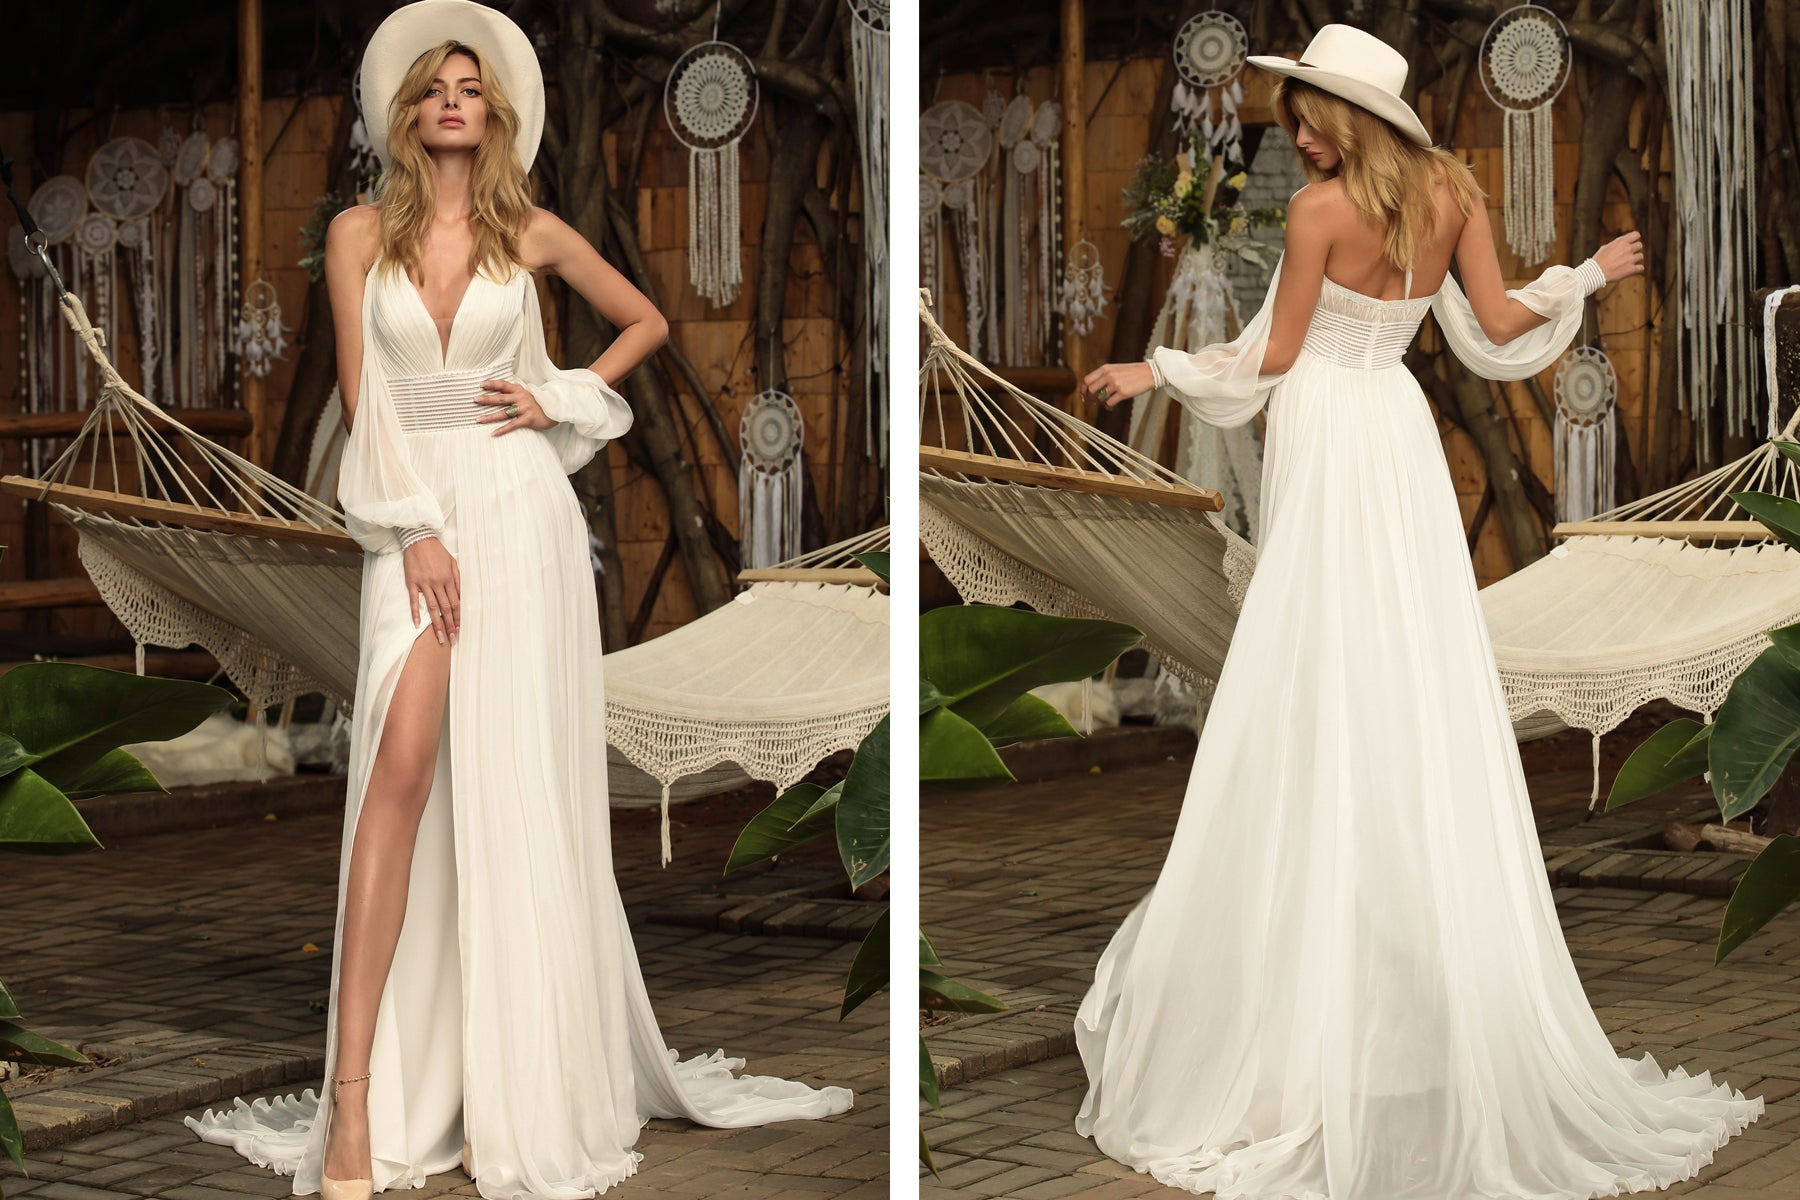 Eternal-bridal-wedding-dress-chic-nostalgia-mellow-collection-dylan